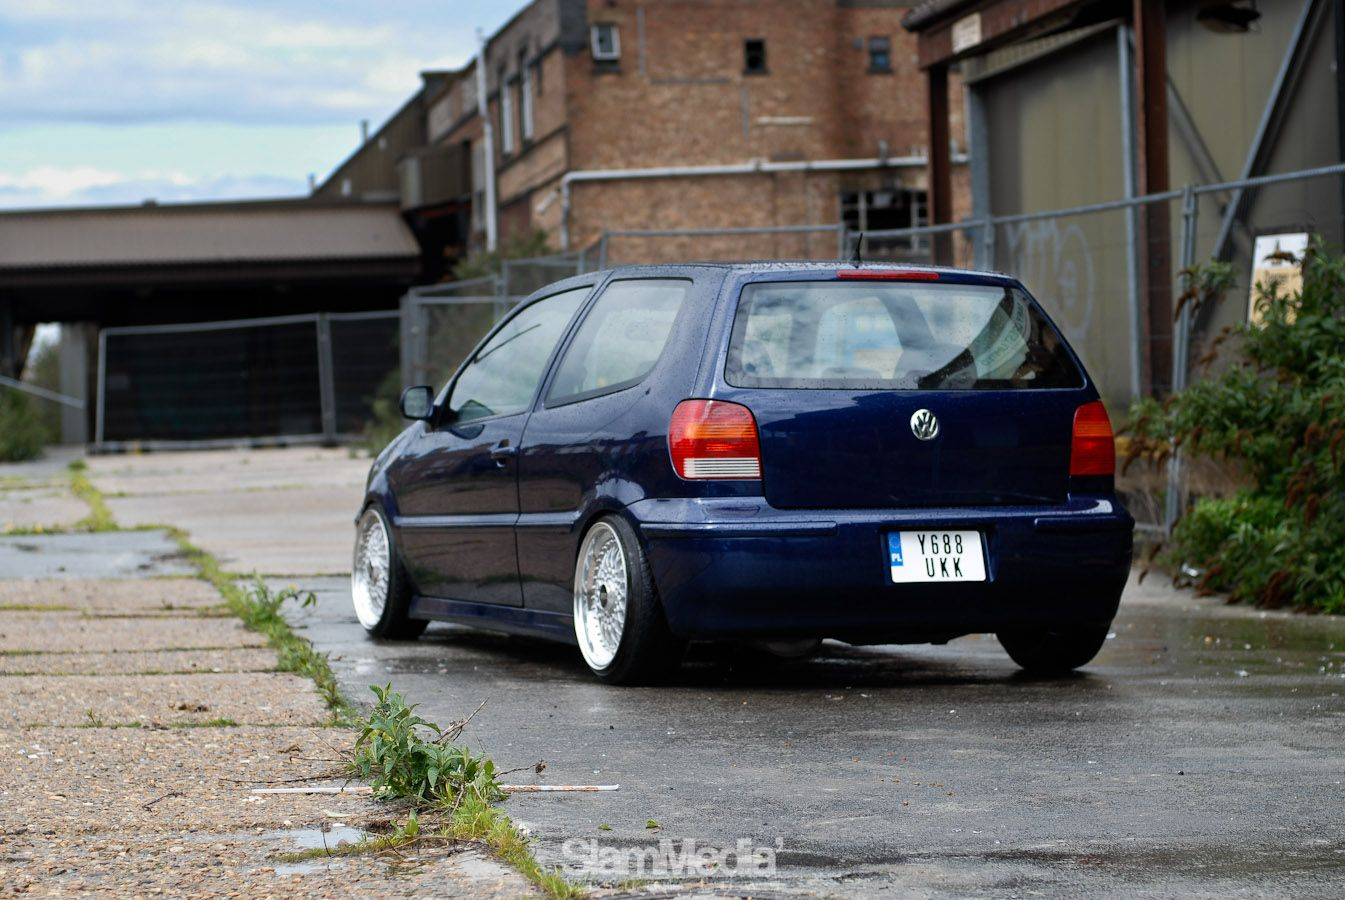 volkswagen polo mk3 f 6n2 vw polo pinterest volkswagen polo volkswagen and vw. Black Bedroom Furniture Sets. Home Design Ideas